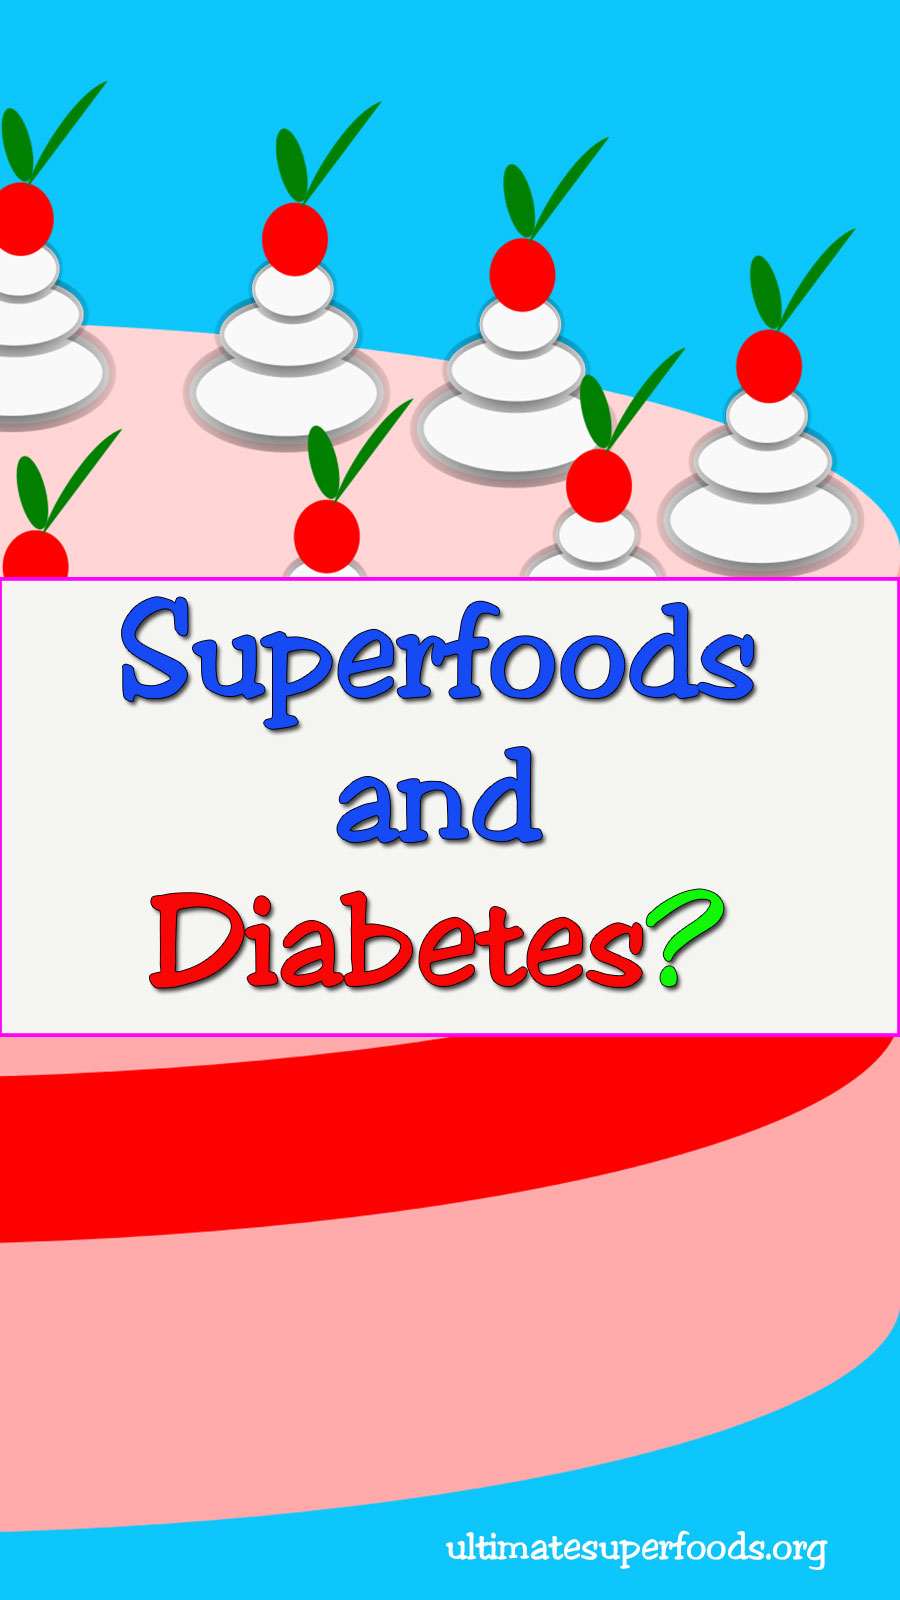 diabetes-superfood